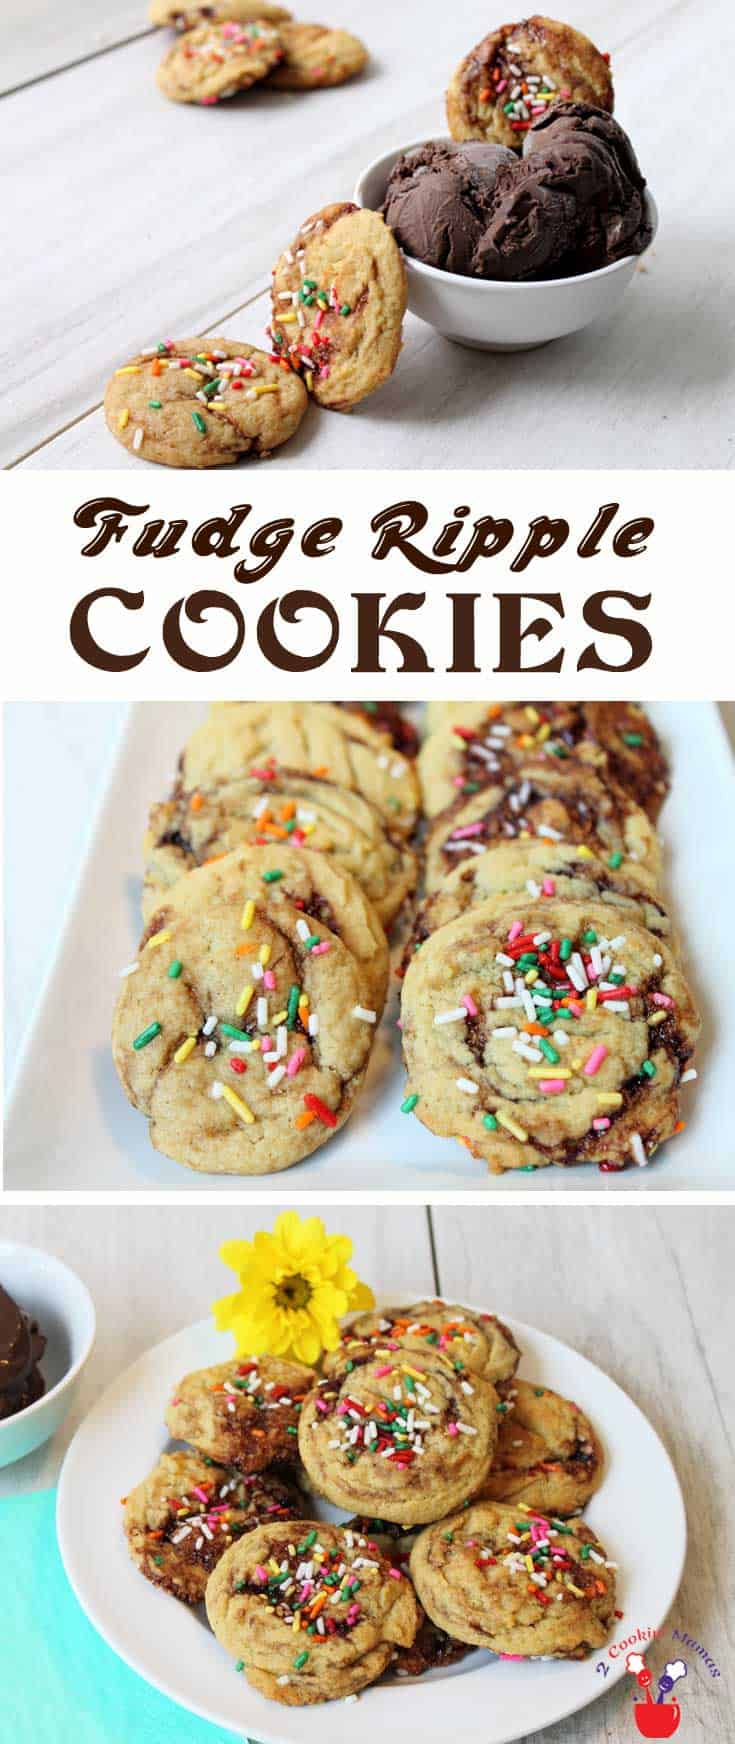 Fudge Ripple Cookies | 2 Cookin Mamas These oh-so-delicious Fudge Ripple Cookies are soft, rich and chewy. They're fun to make, drizzled with fudge & colorful sprinkles and even more fun to eat! #recipe